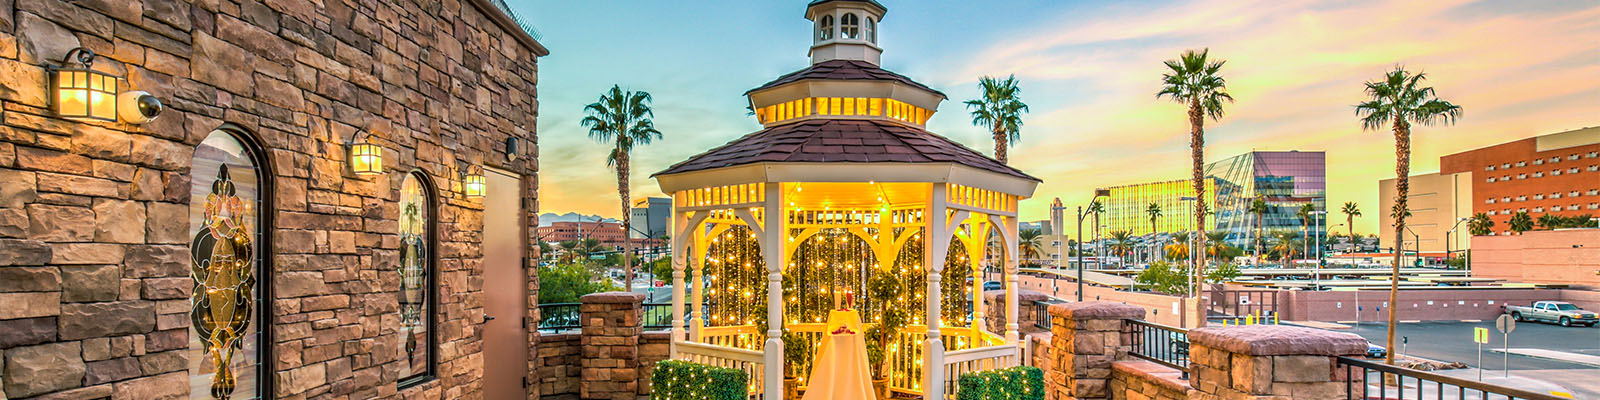 Inexpensive Wedding Venues Las Vegas